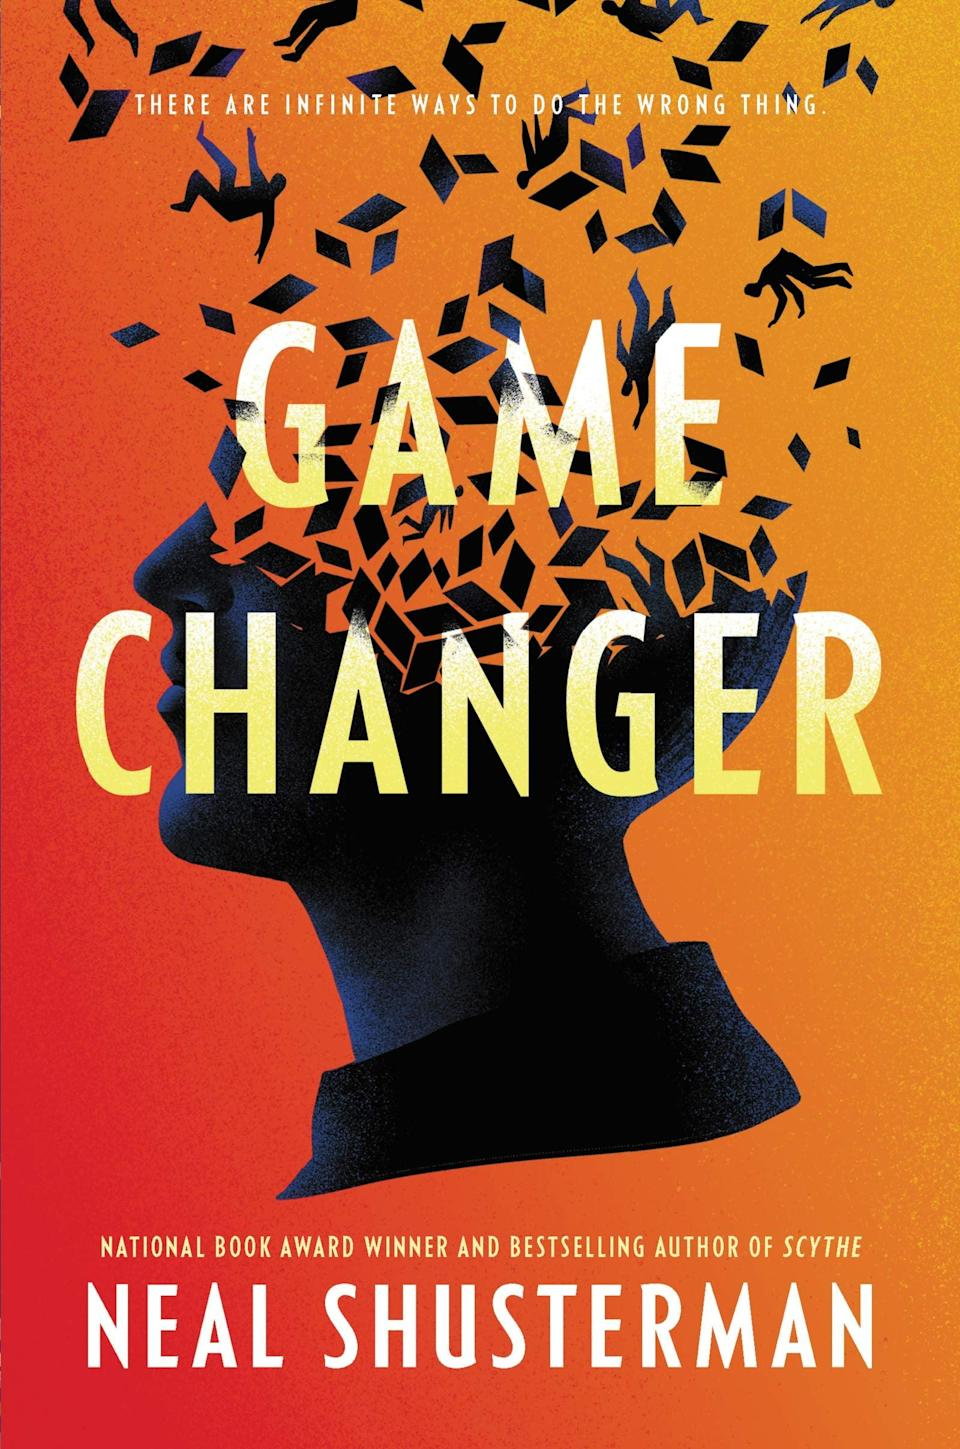 <p>Neal Shusterman's dimension-hopping novel <span><strong>Game Changer</strong></span> is all about challenging our personal preconceptions of the world. When football player Ash is hit hard on the field, he's knocked into a series of alternate dimensions, where he experience life through the eyes of people he could never fully understand from the outside. </p> <p><em>Out Feb. 9</em></p>